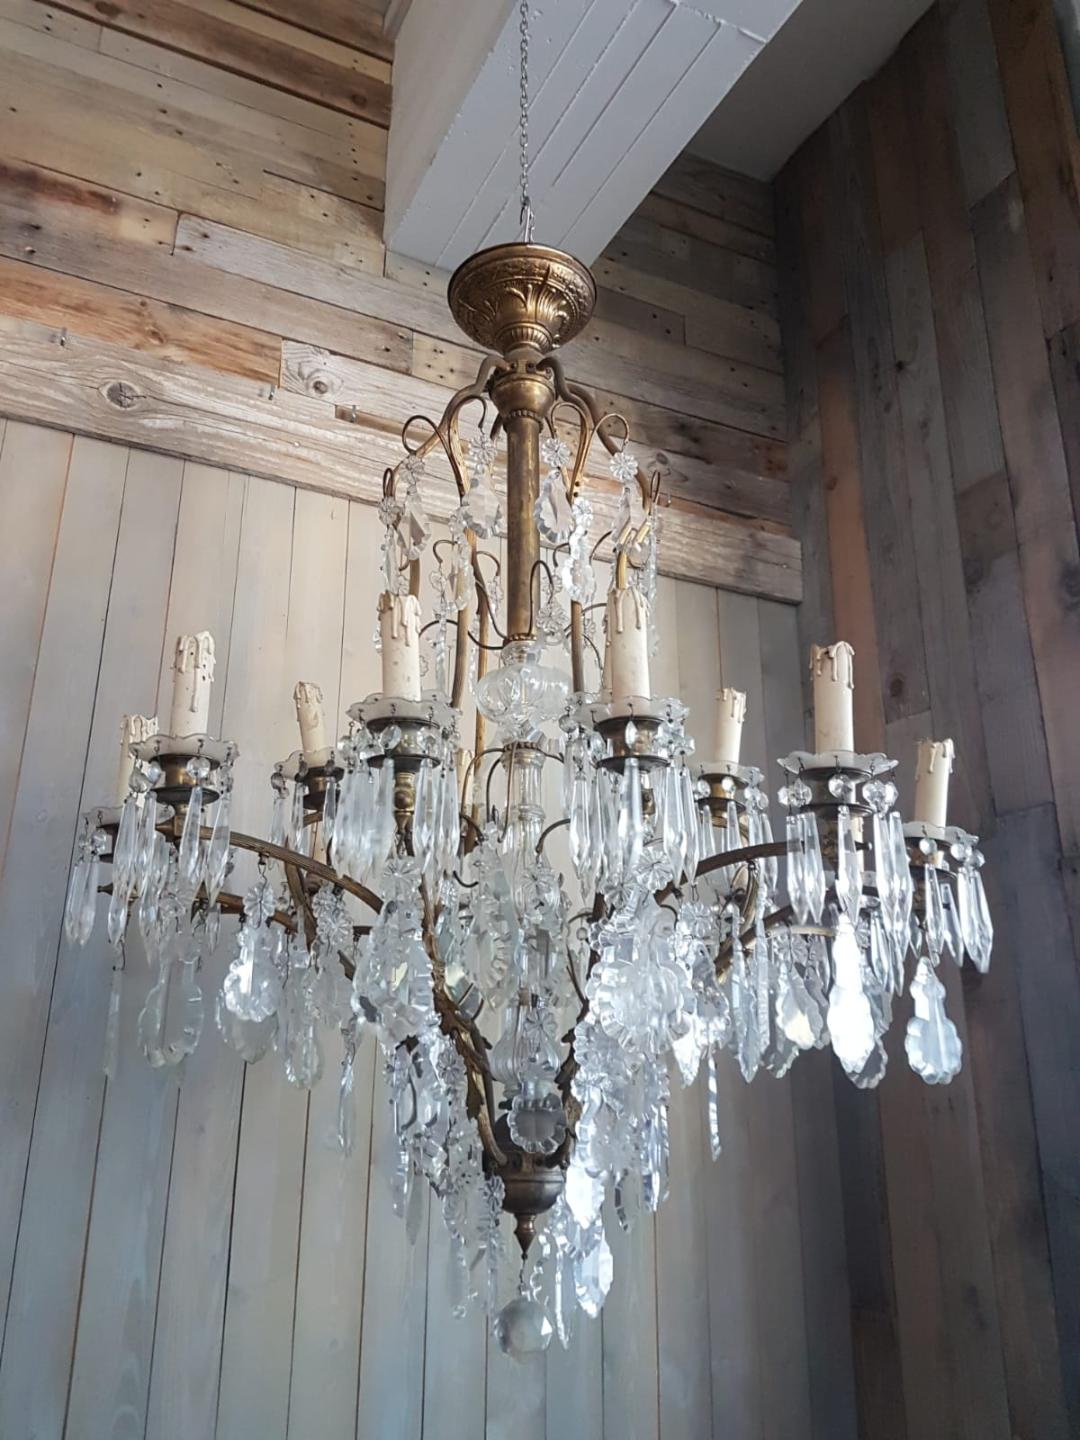 #5573-AGGG - 19th C. Crystal Chandelier From Roman Palace